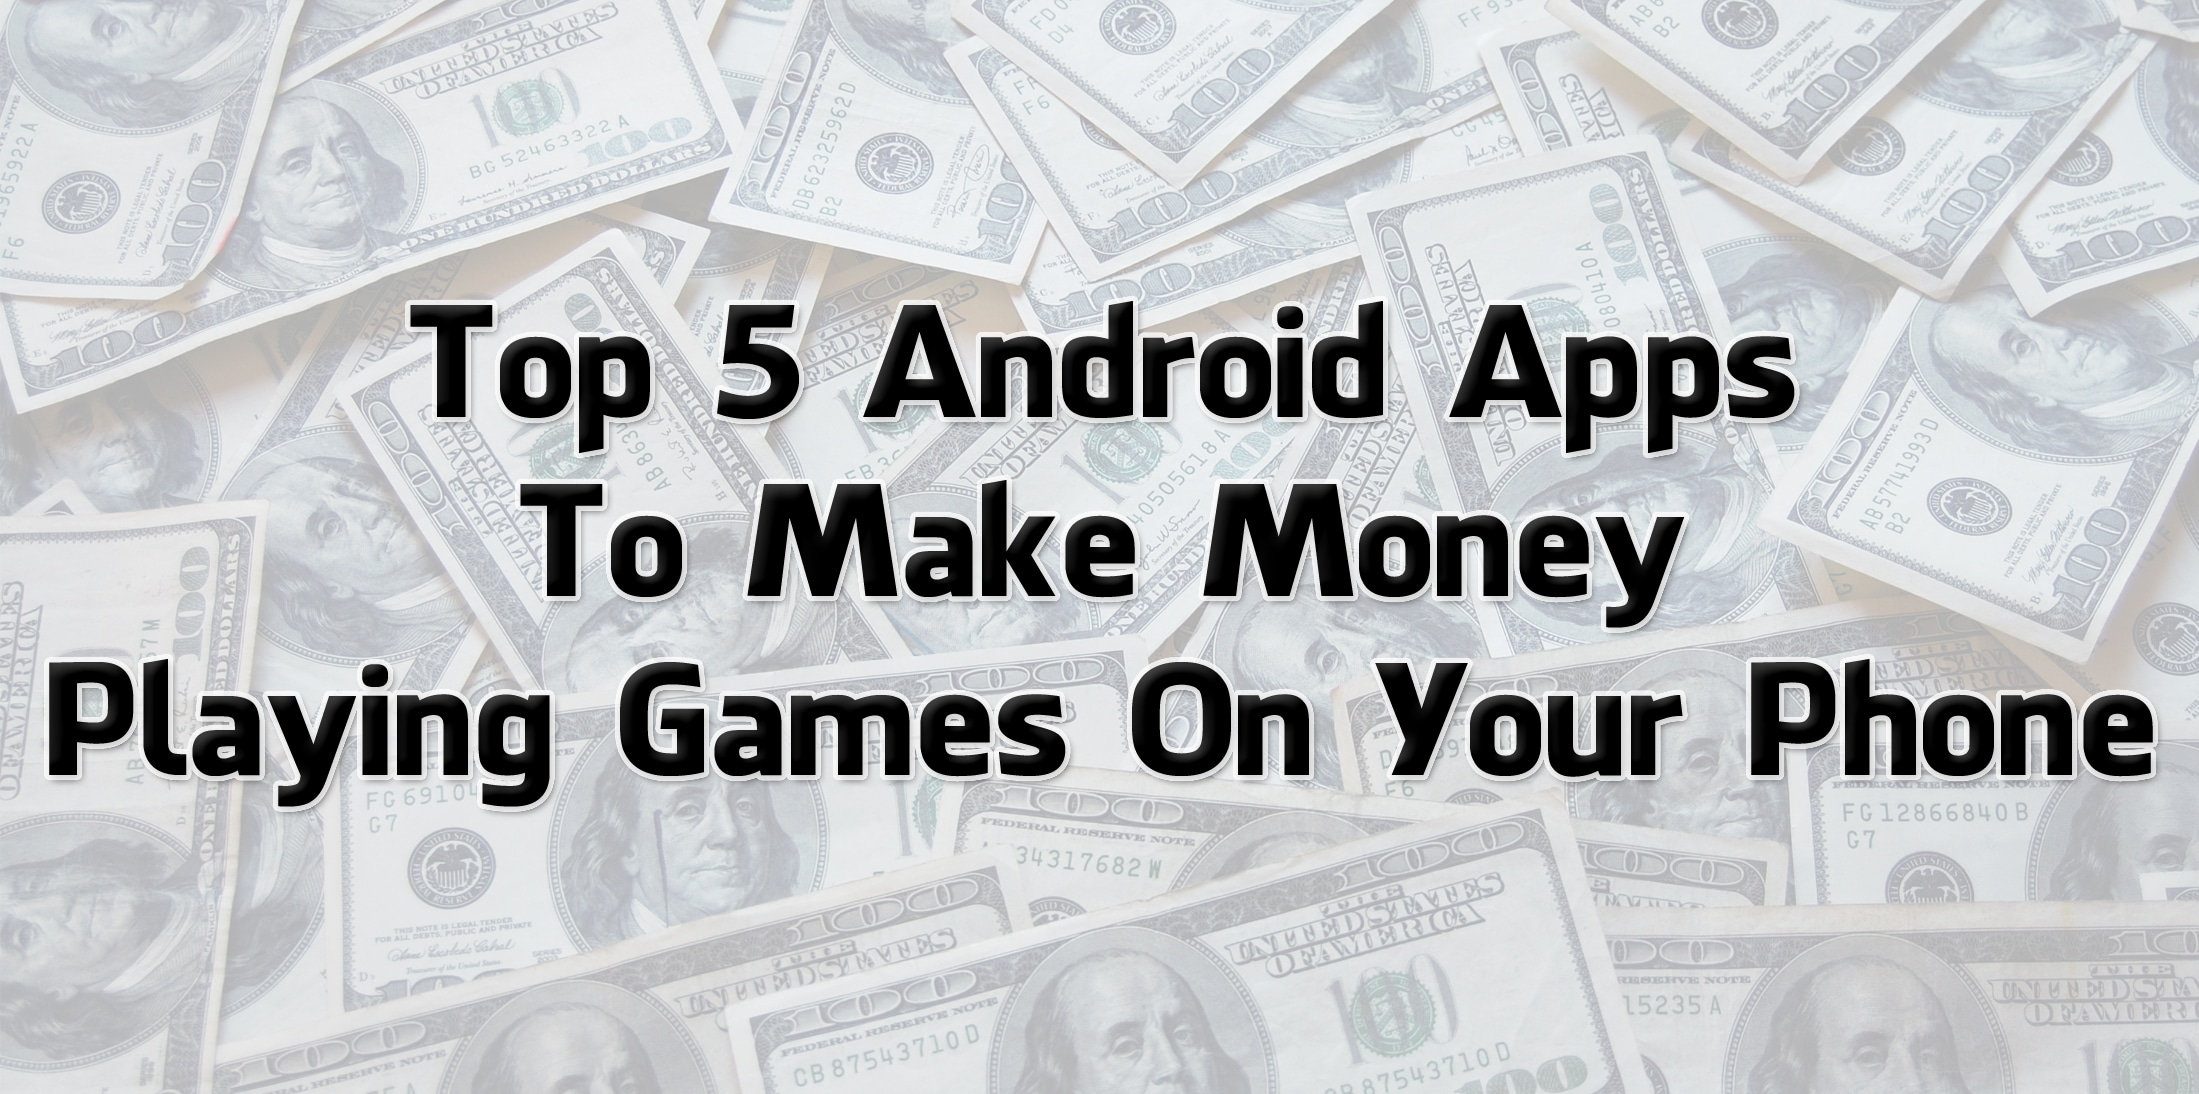 Top 5 Android Apps To Make Money Playing Games On Your Phone  Trick Xpert